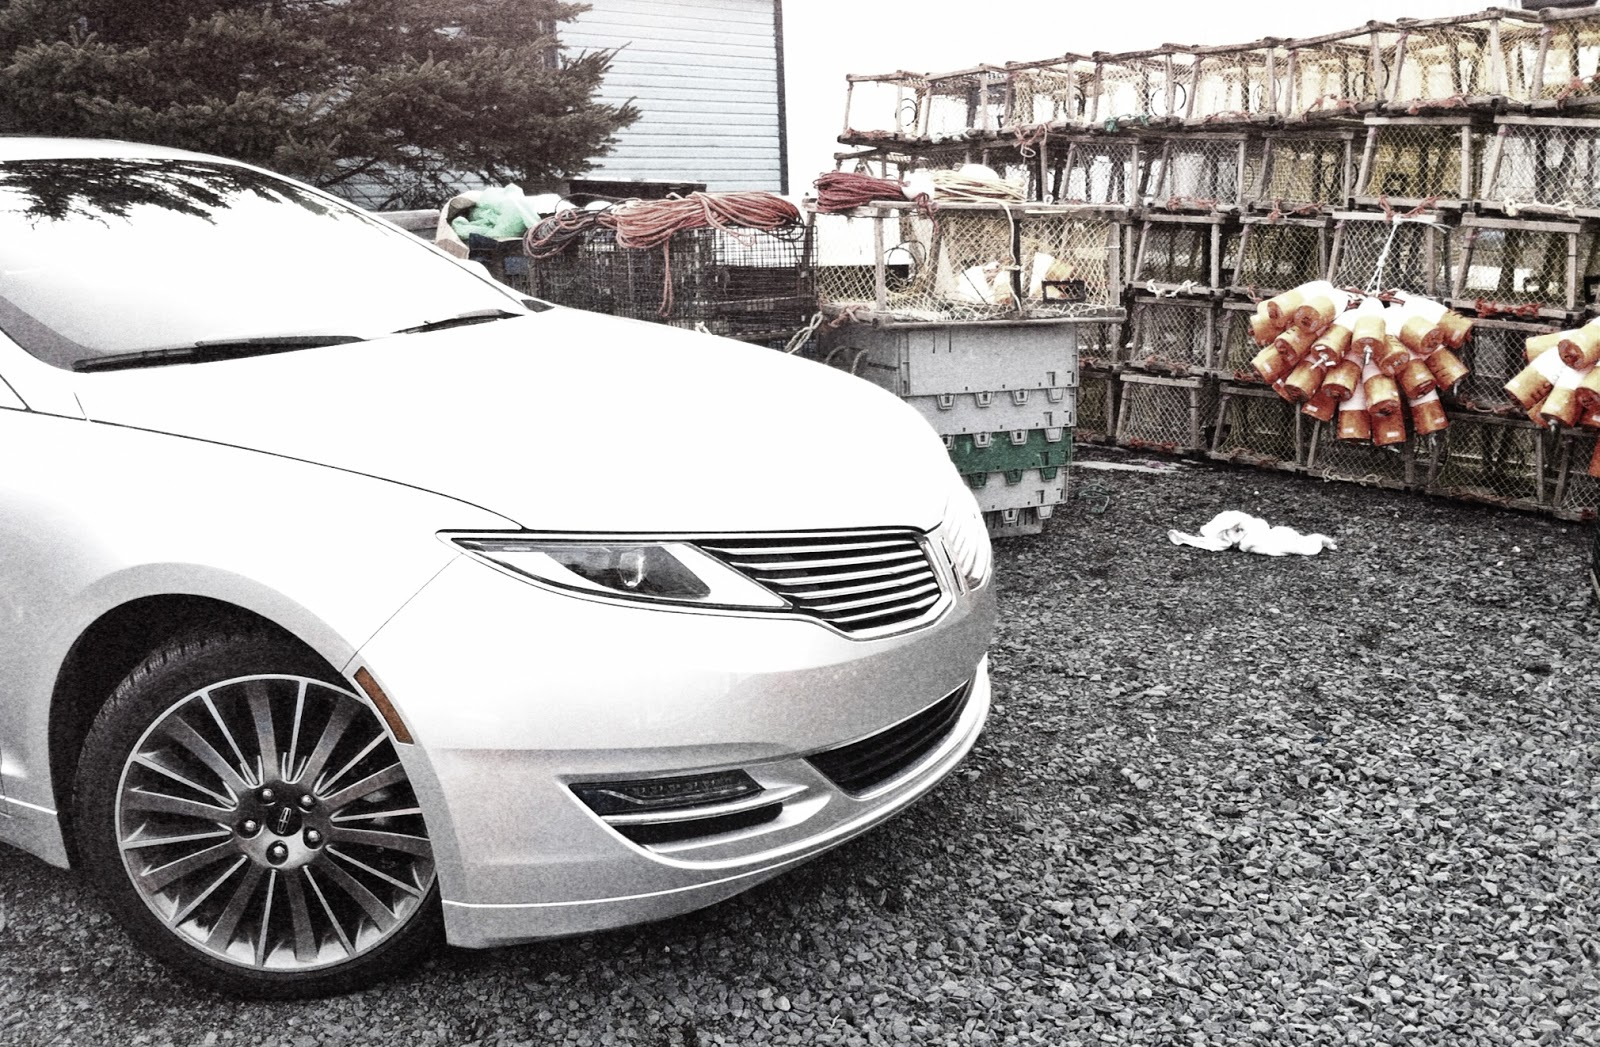 2014 Lincoln MKZ Hybrid lobster traps